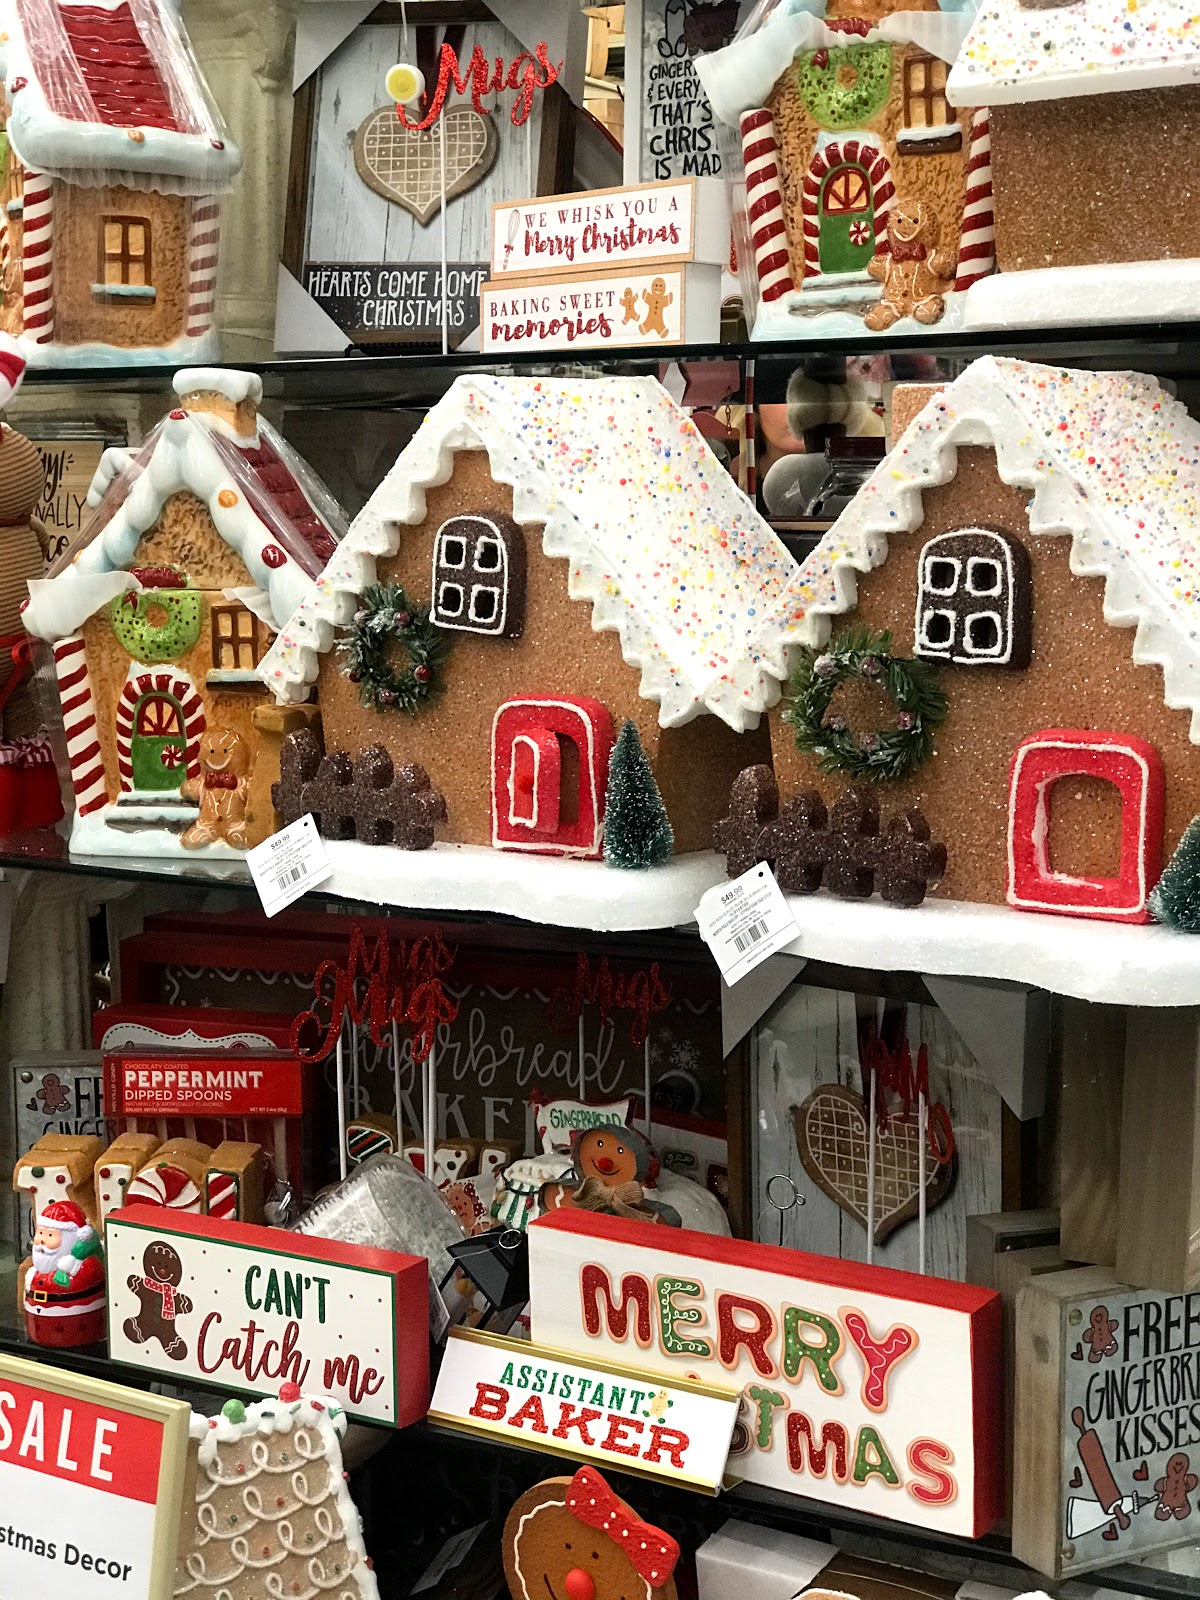 Bought one gingerbread house for the Christmas Holidays